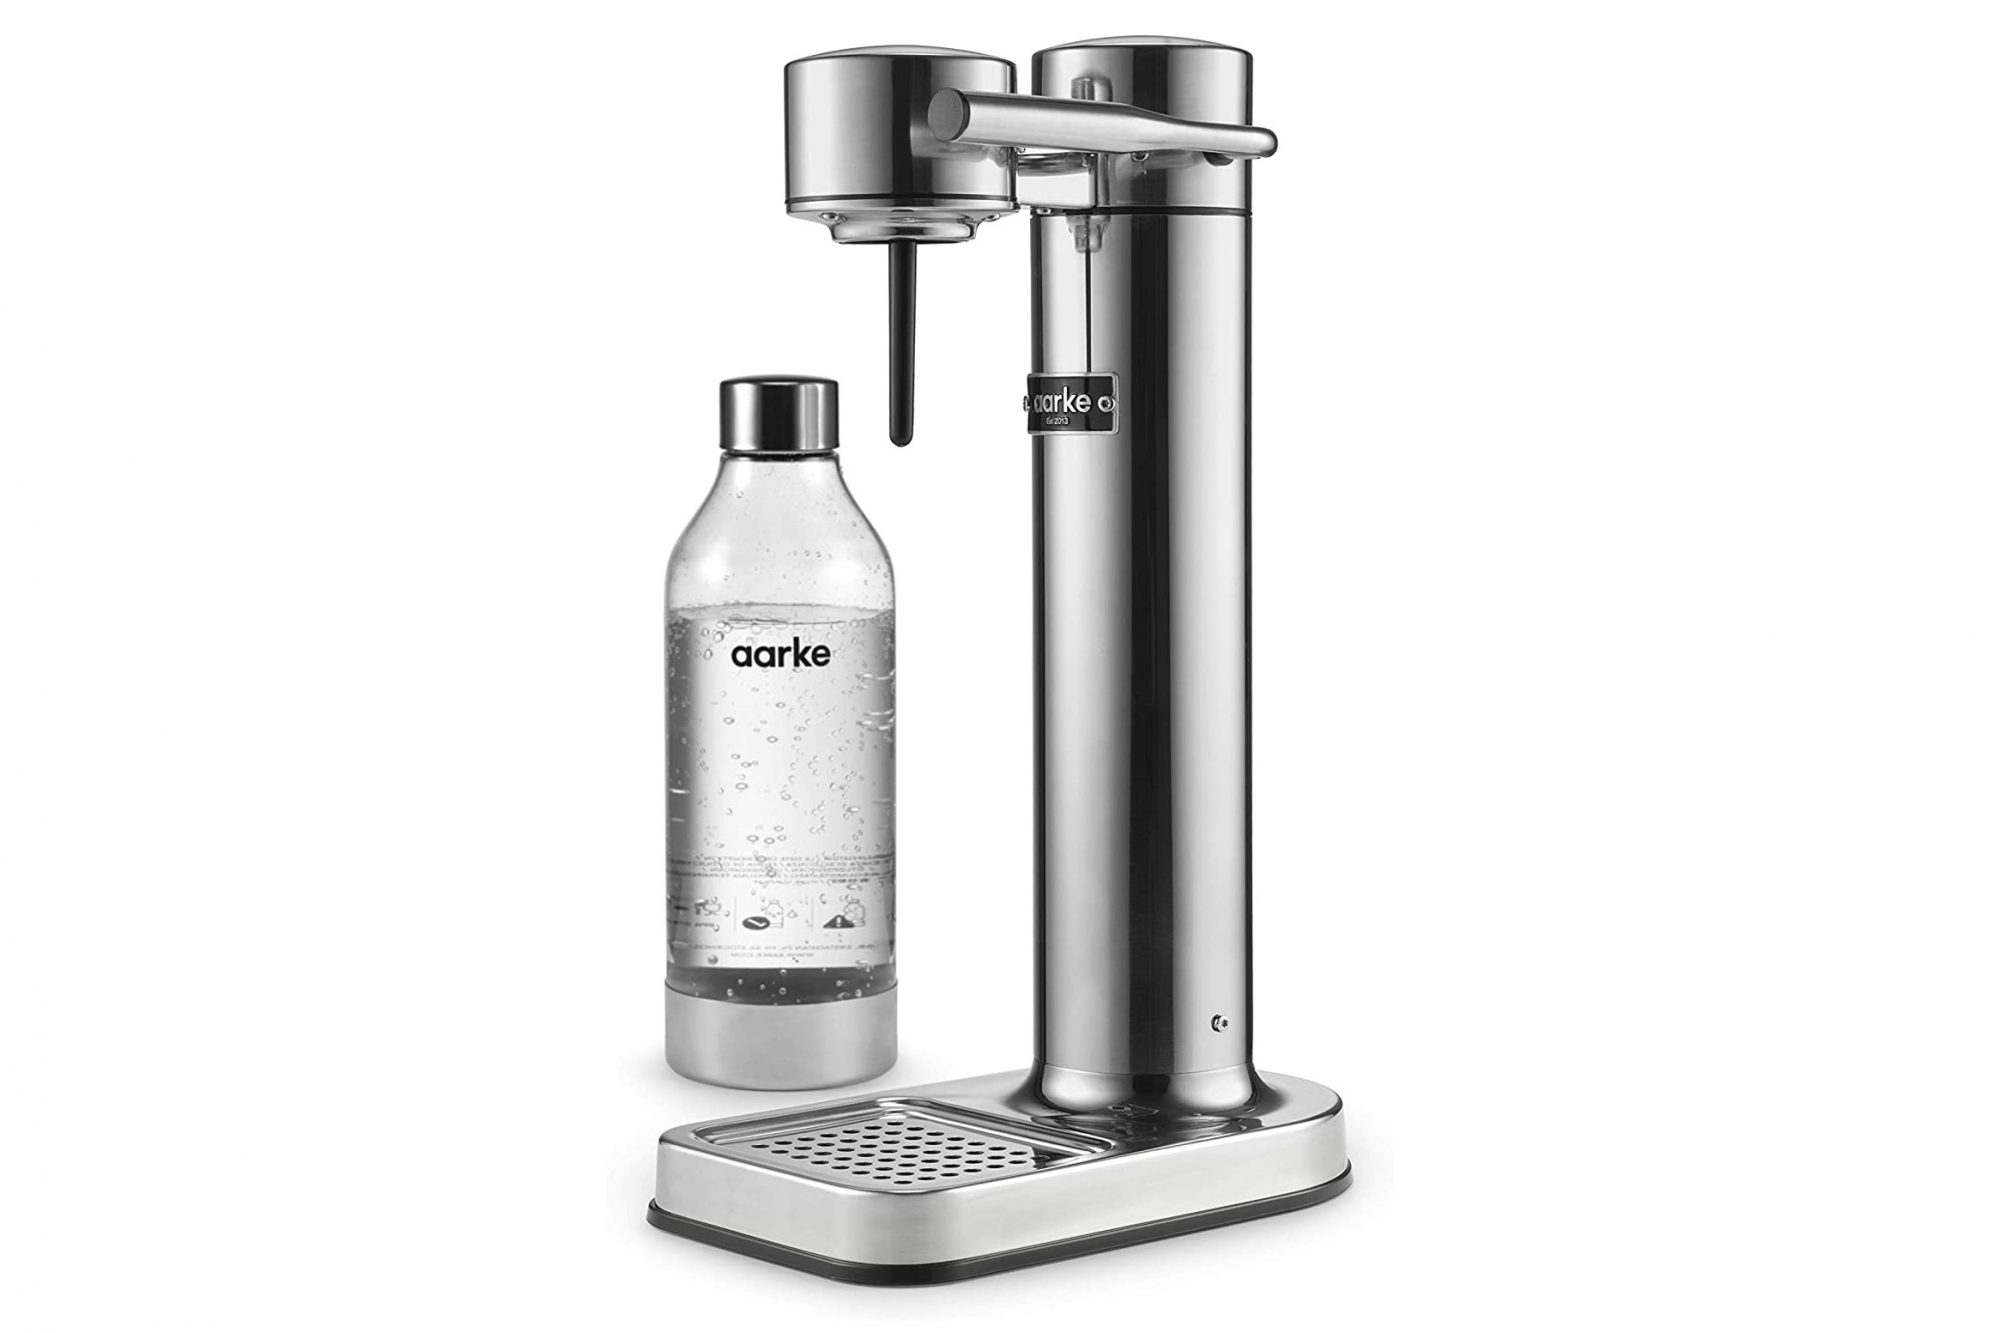 Aarke Stainless Steel Soda Maker with container full of sparkling water